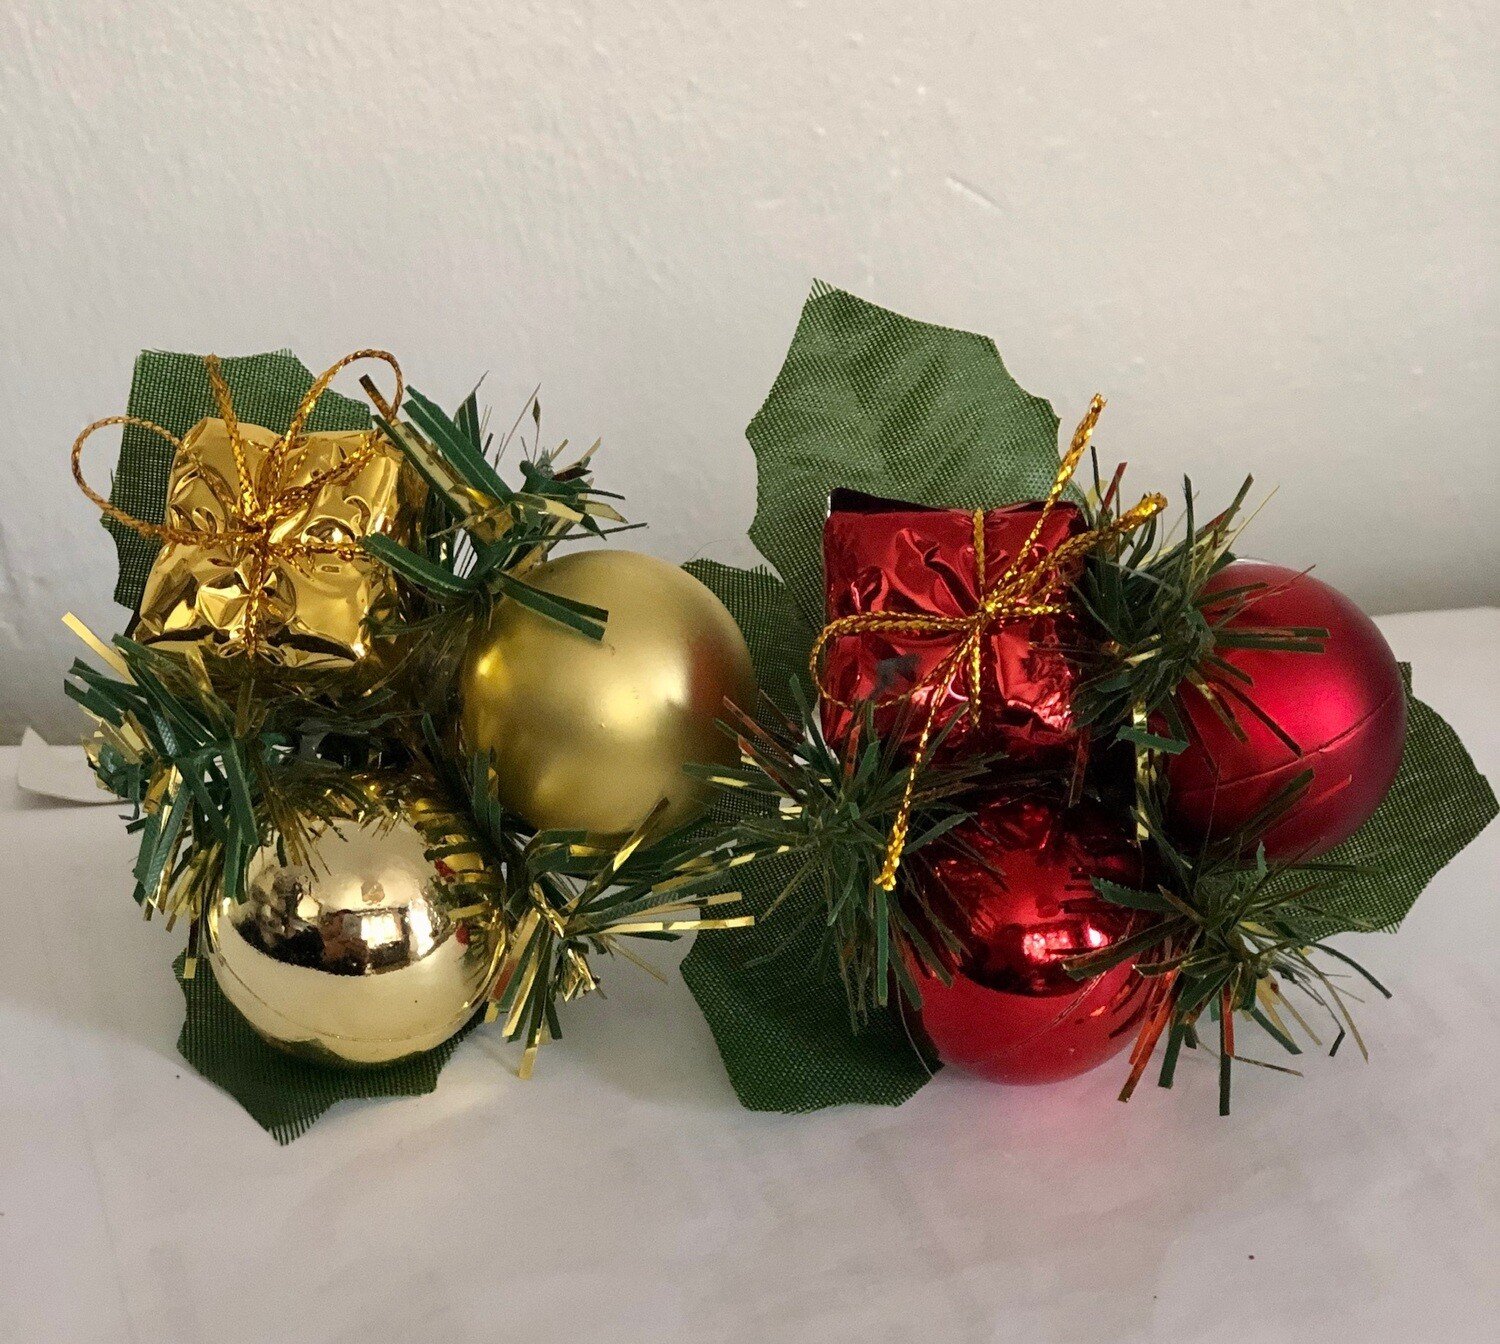 Bauble and Present Pick